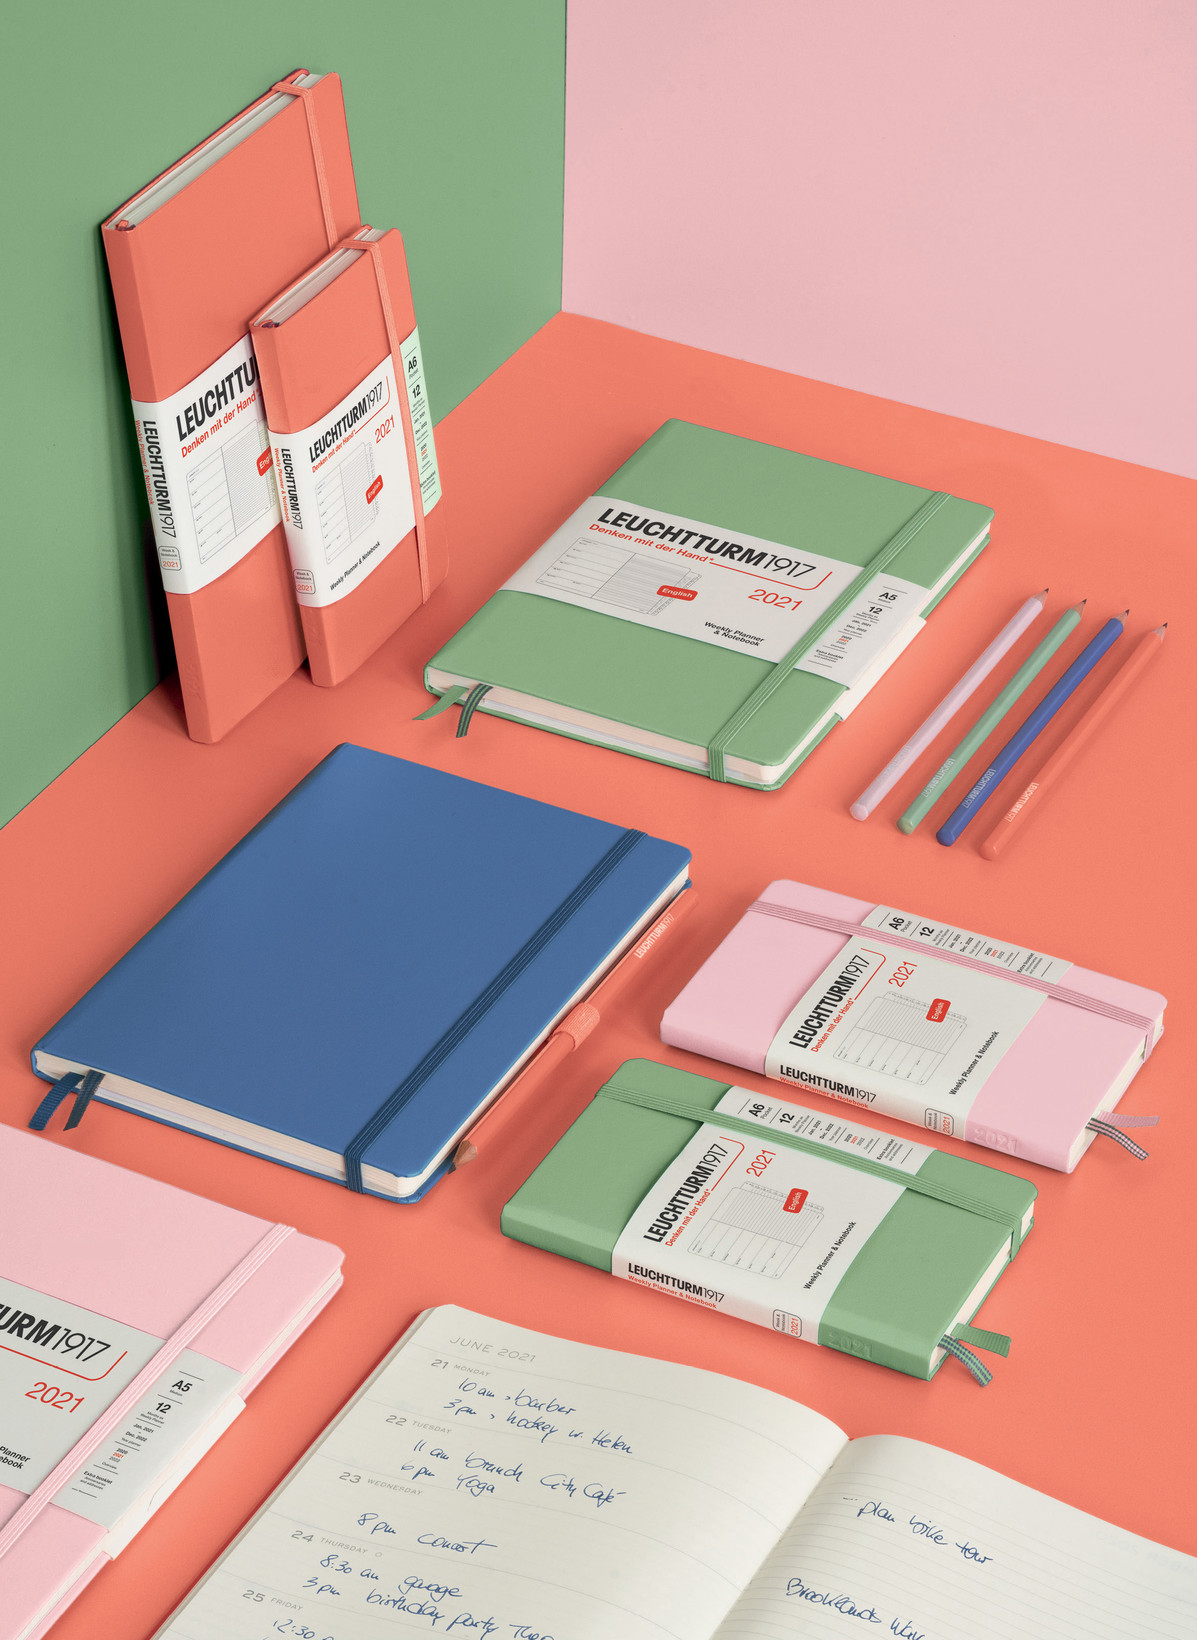 Weekly Planner & Notebook Pocket (A6) 2021, With Booklet, Bellini |  Leuchtturm1917 | Notebooks | Bullet Journals | Academy Pads throughout 2021-2021 2 Year Pocket Planner: 2 Year